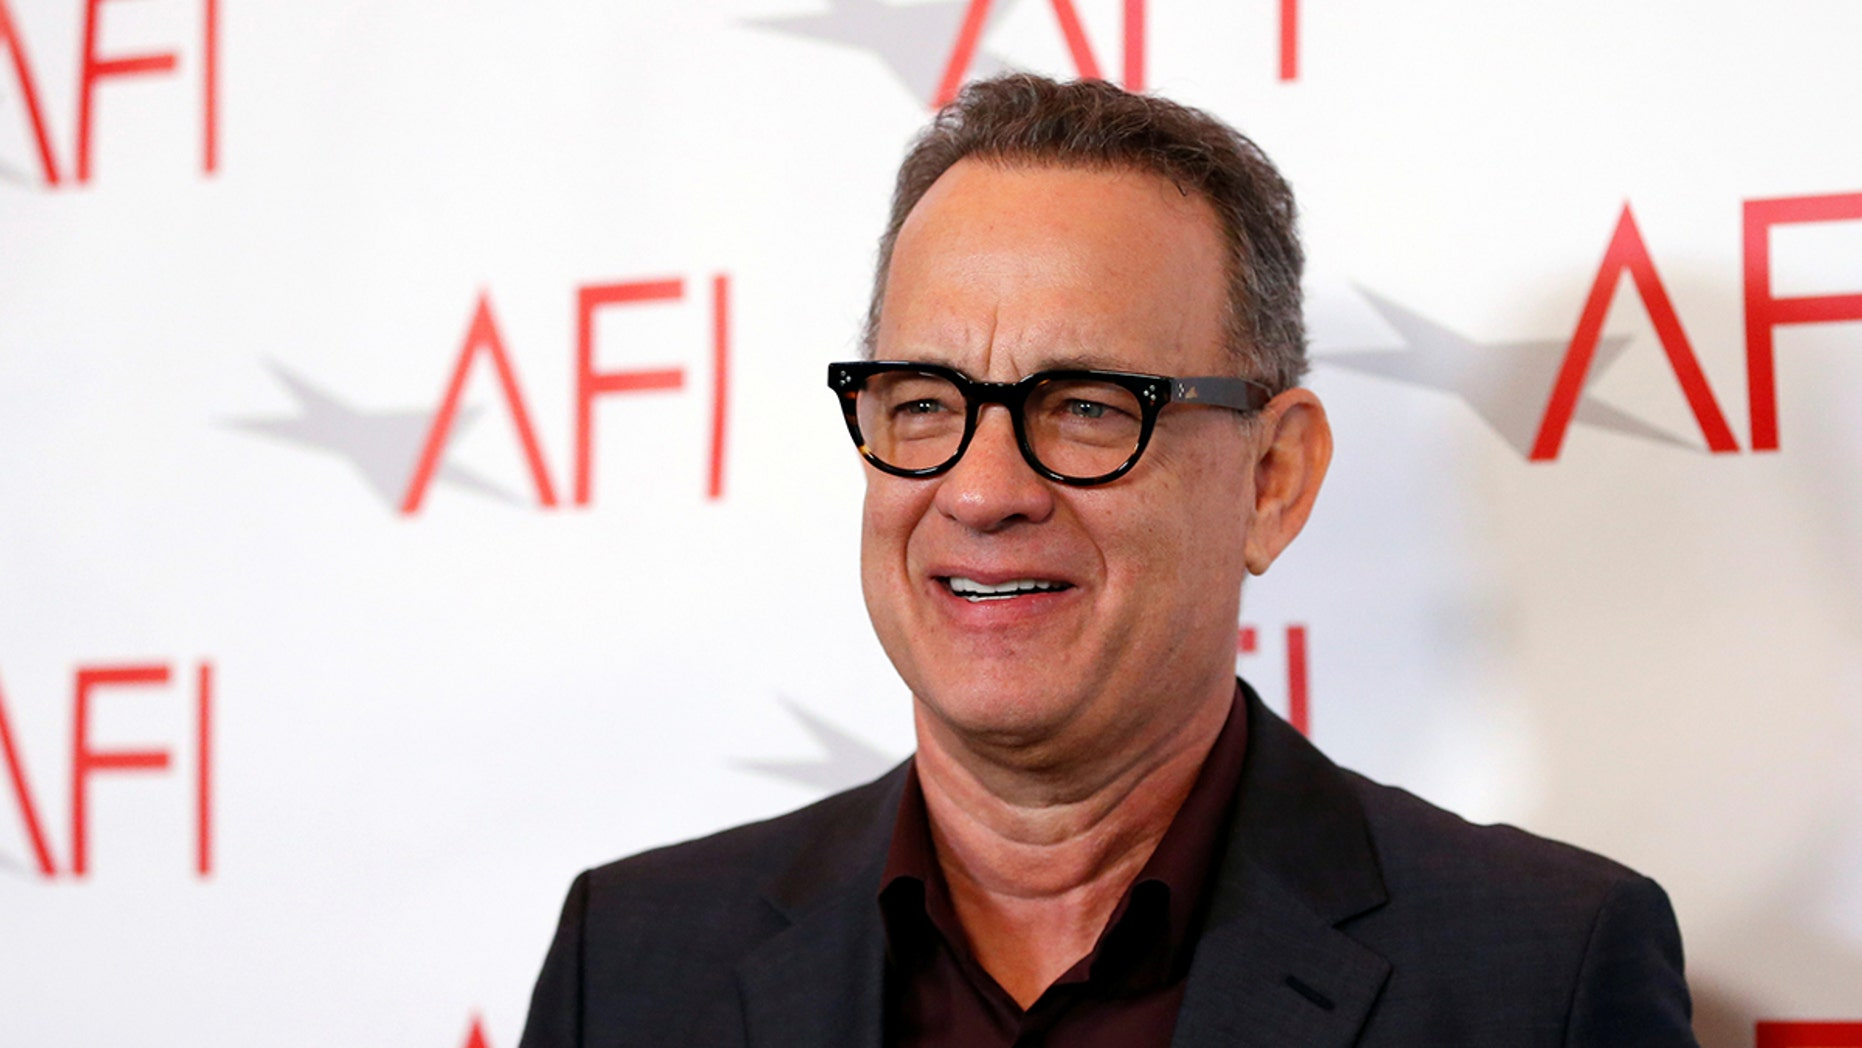 Actor Tom Hanks poses at the AFI AWARDS 2017 luncheon in Los Angeles, California, U.S., January 5, 2018. REUTERS/Mario Anzuoni - RC1480564750